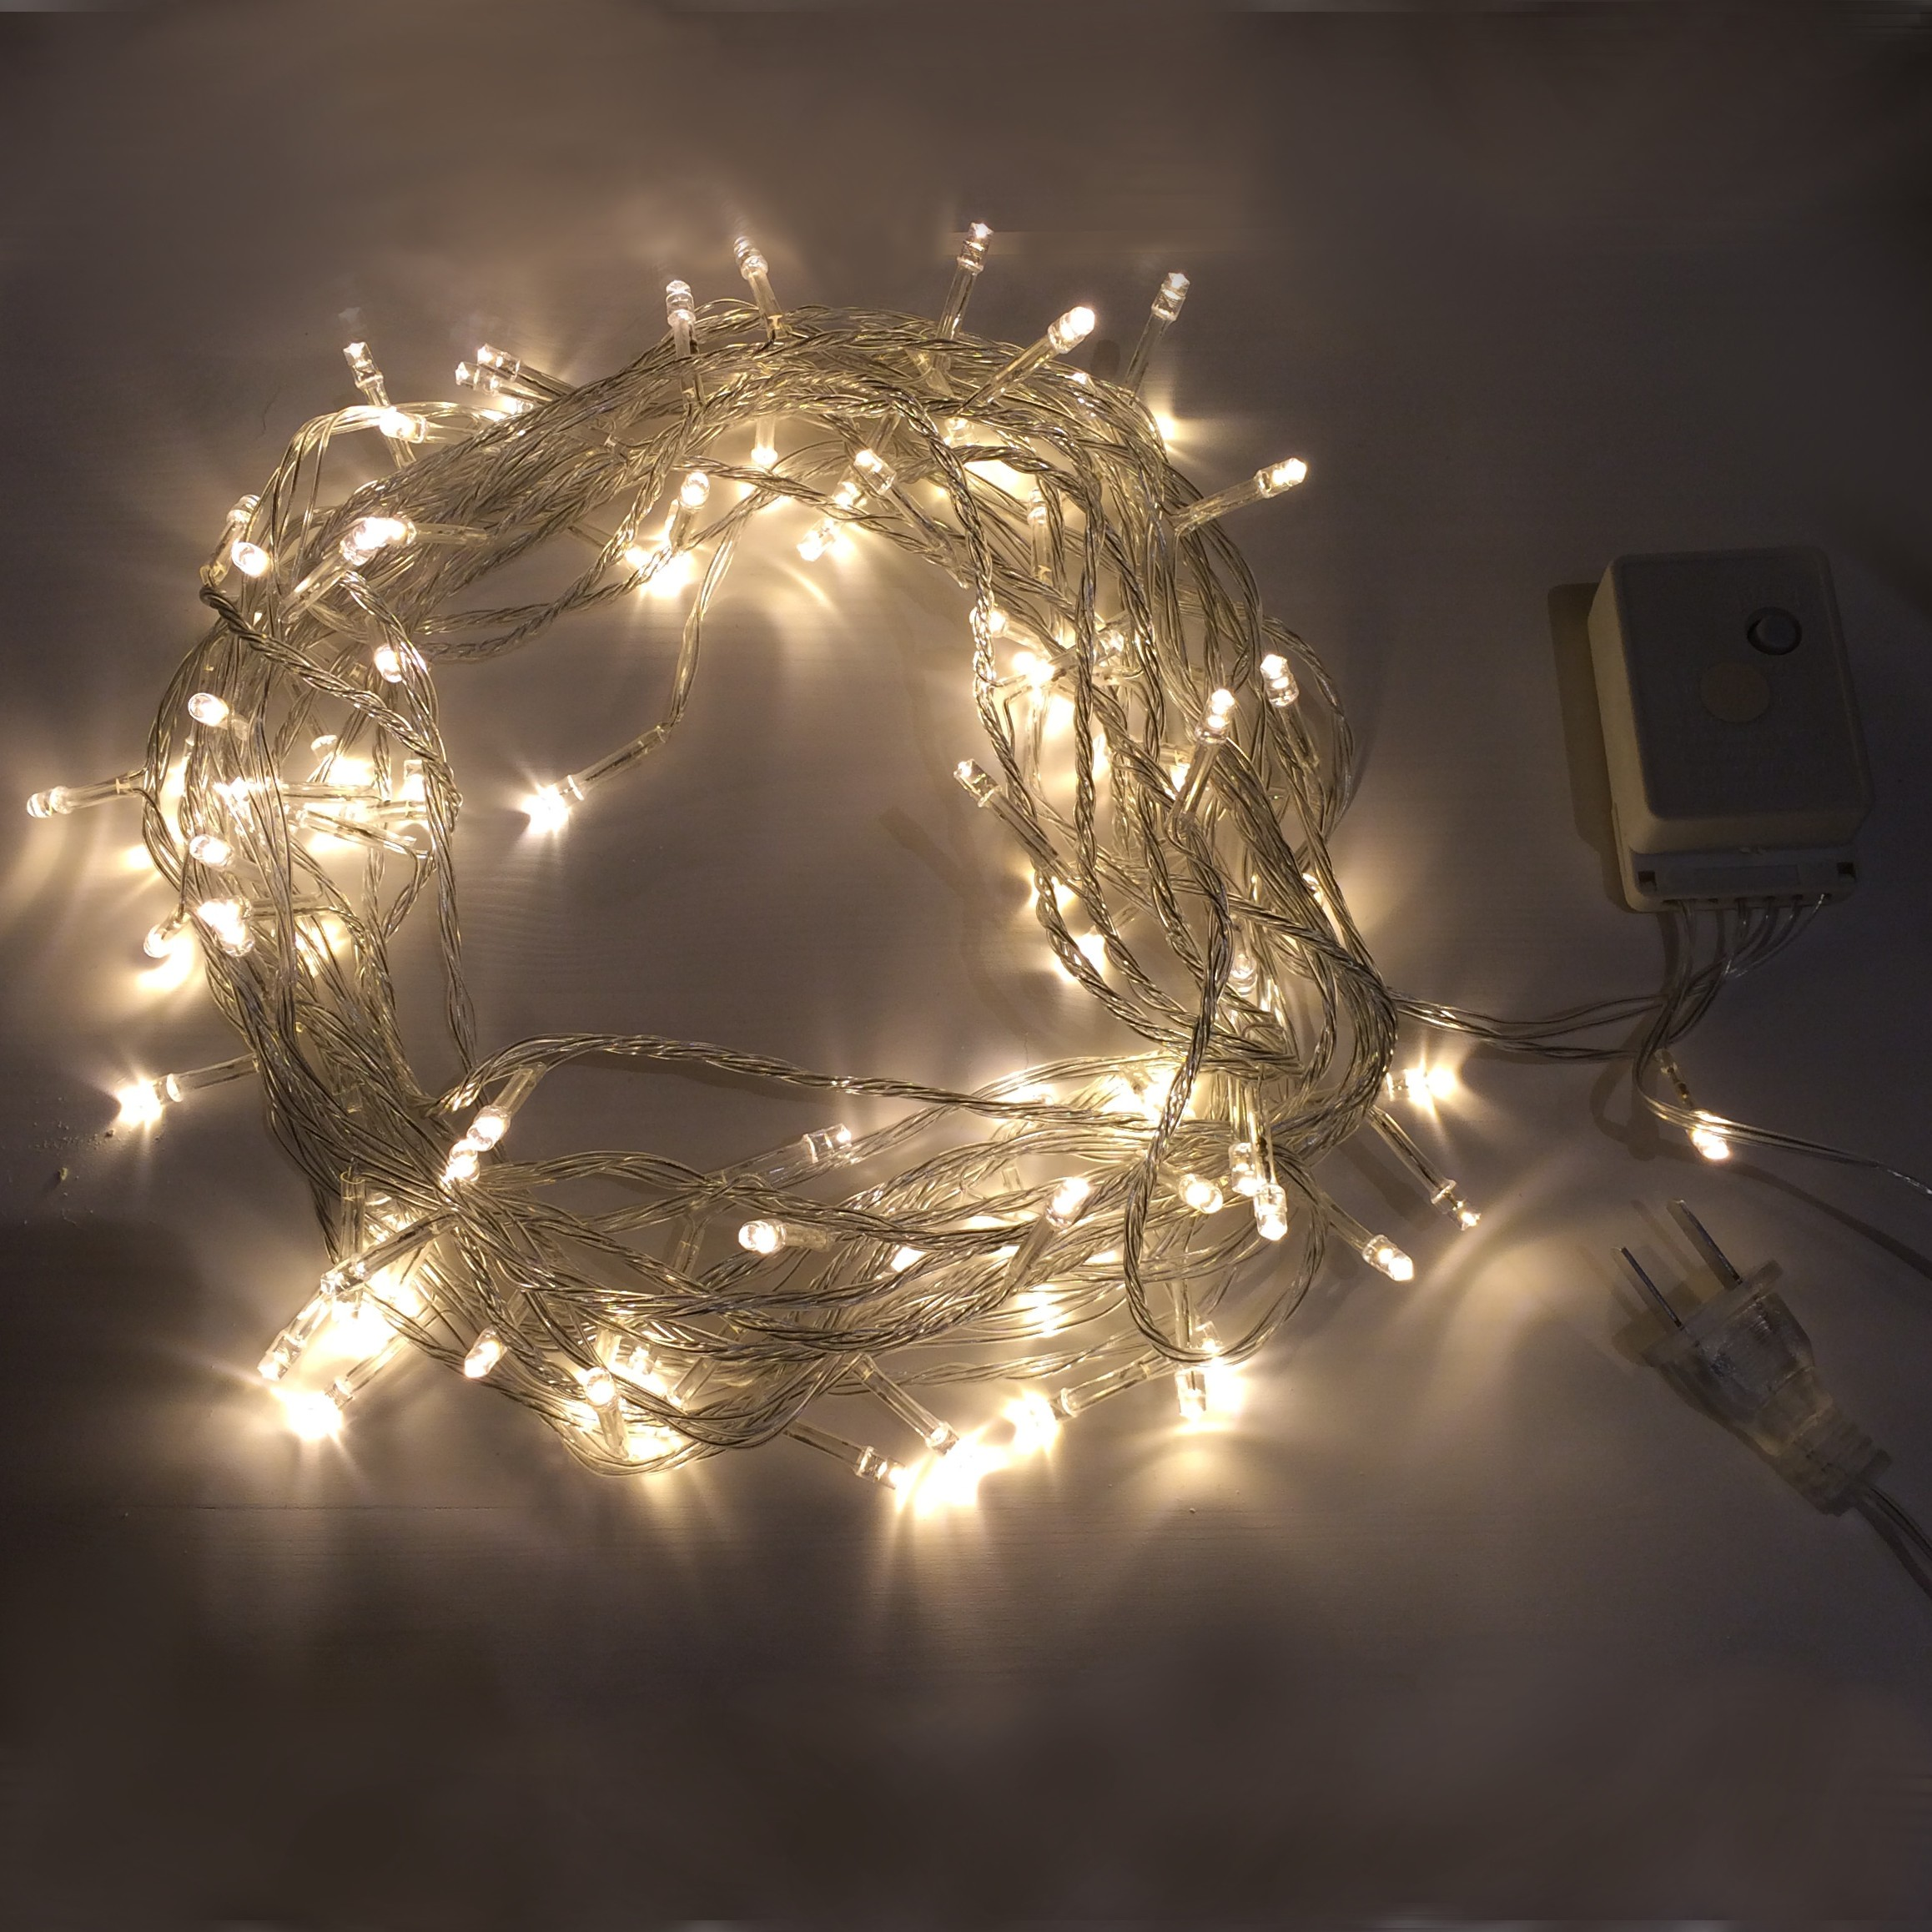 799 warm white 10m 8 mode led string lights fairy lights 799 warm white 10m 8 mode led string lights fairy lights christmas lights tinkersphere mozeypictures